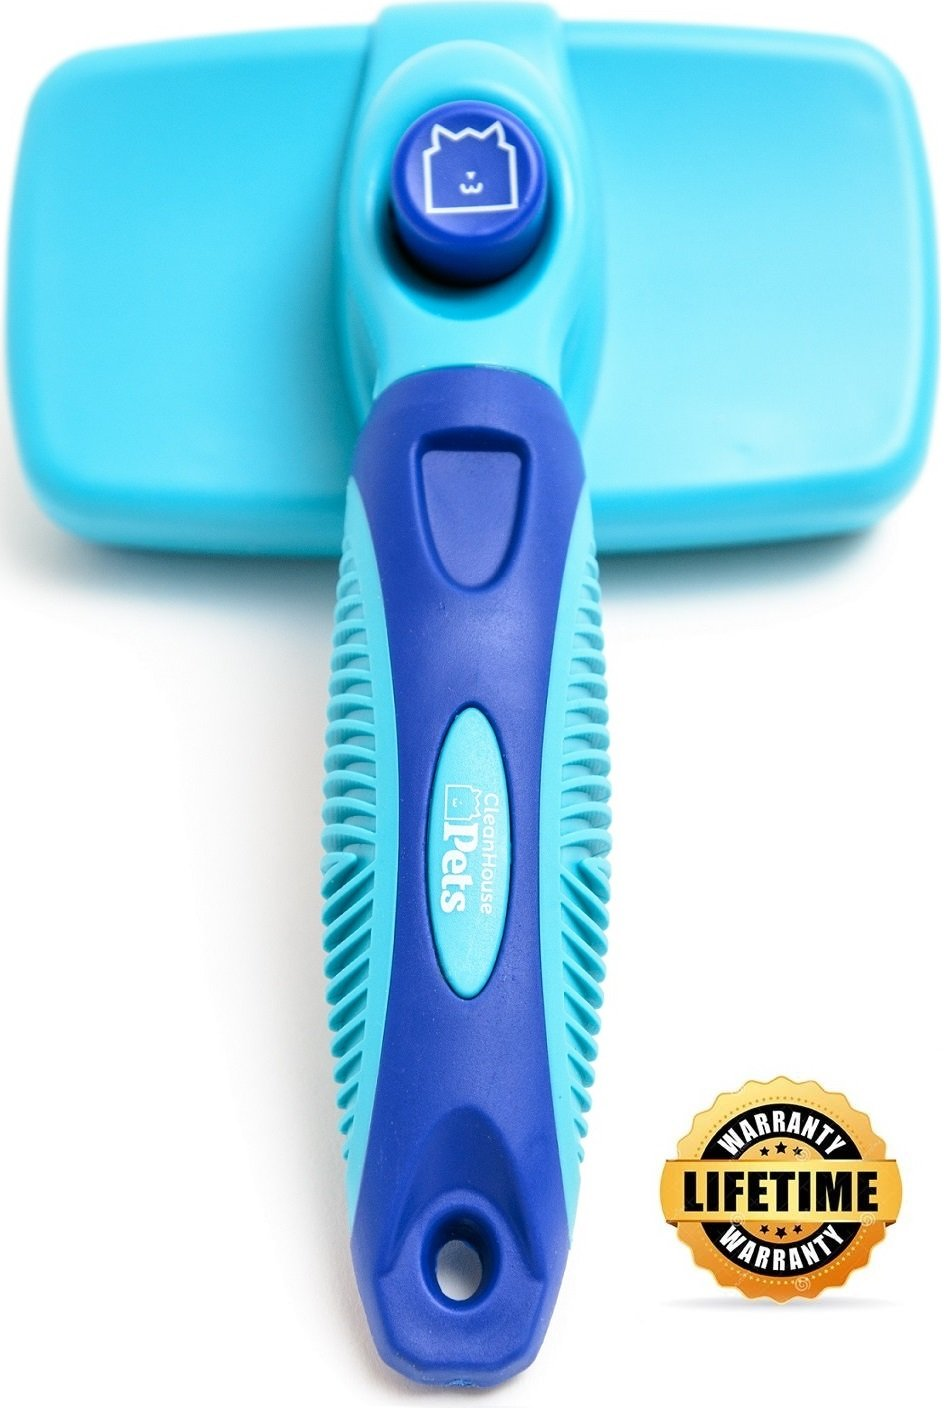 CleanHouse Dog and Cat Hair Brush, Stops Shedding, Easy Self-Cleaning Button! Pro Grooming Brush Removes all Hair, Tangles, Cleans, Desheds - Best Slicker Brush for all Pet Sizes & Hair Types